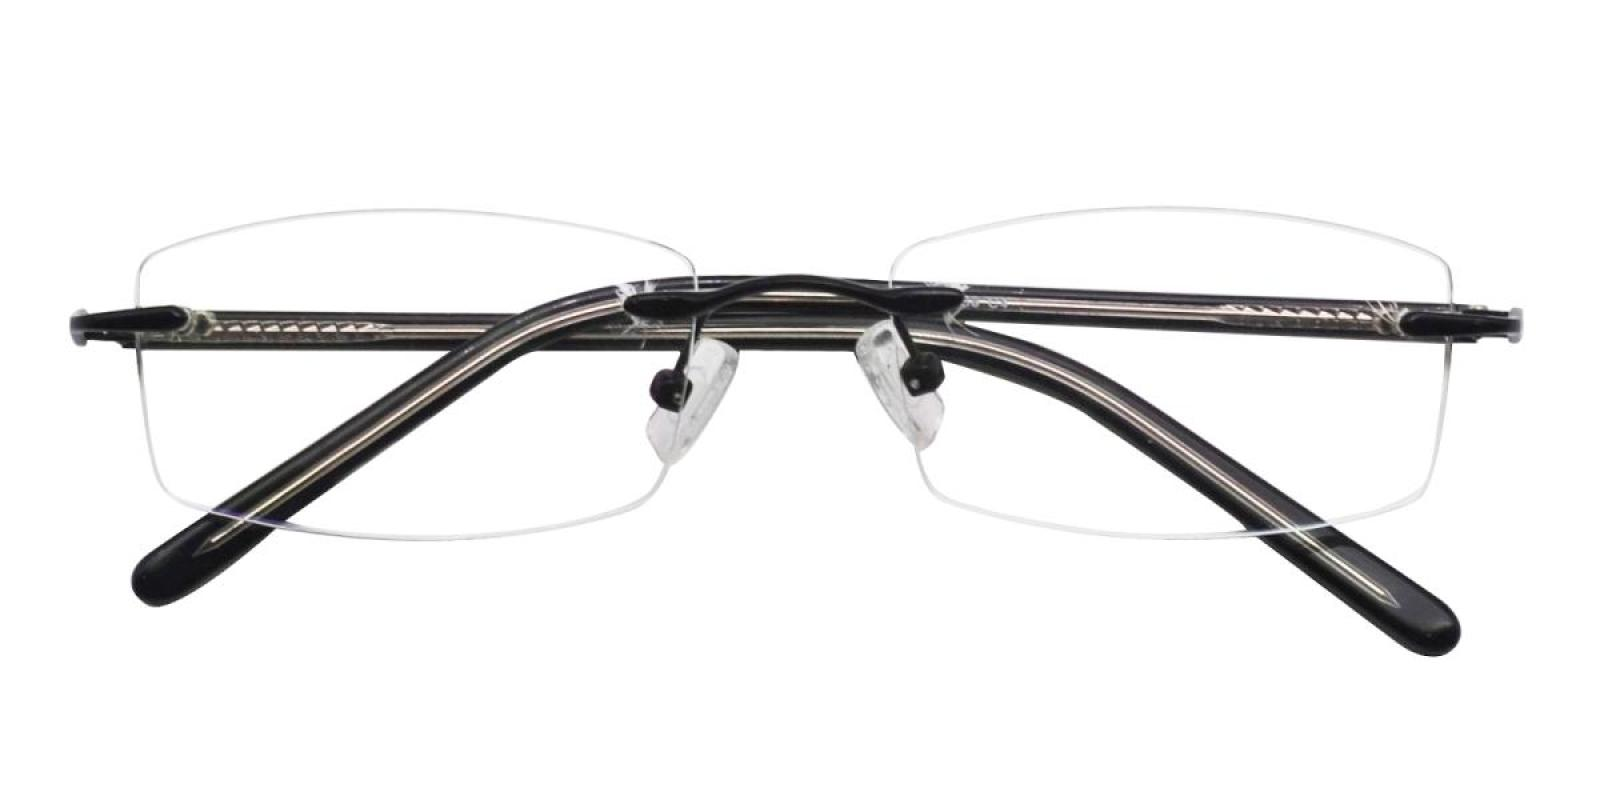 Billings-Black-Varieties-Metal-Eyeglasses-detail